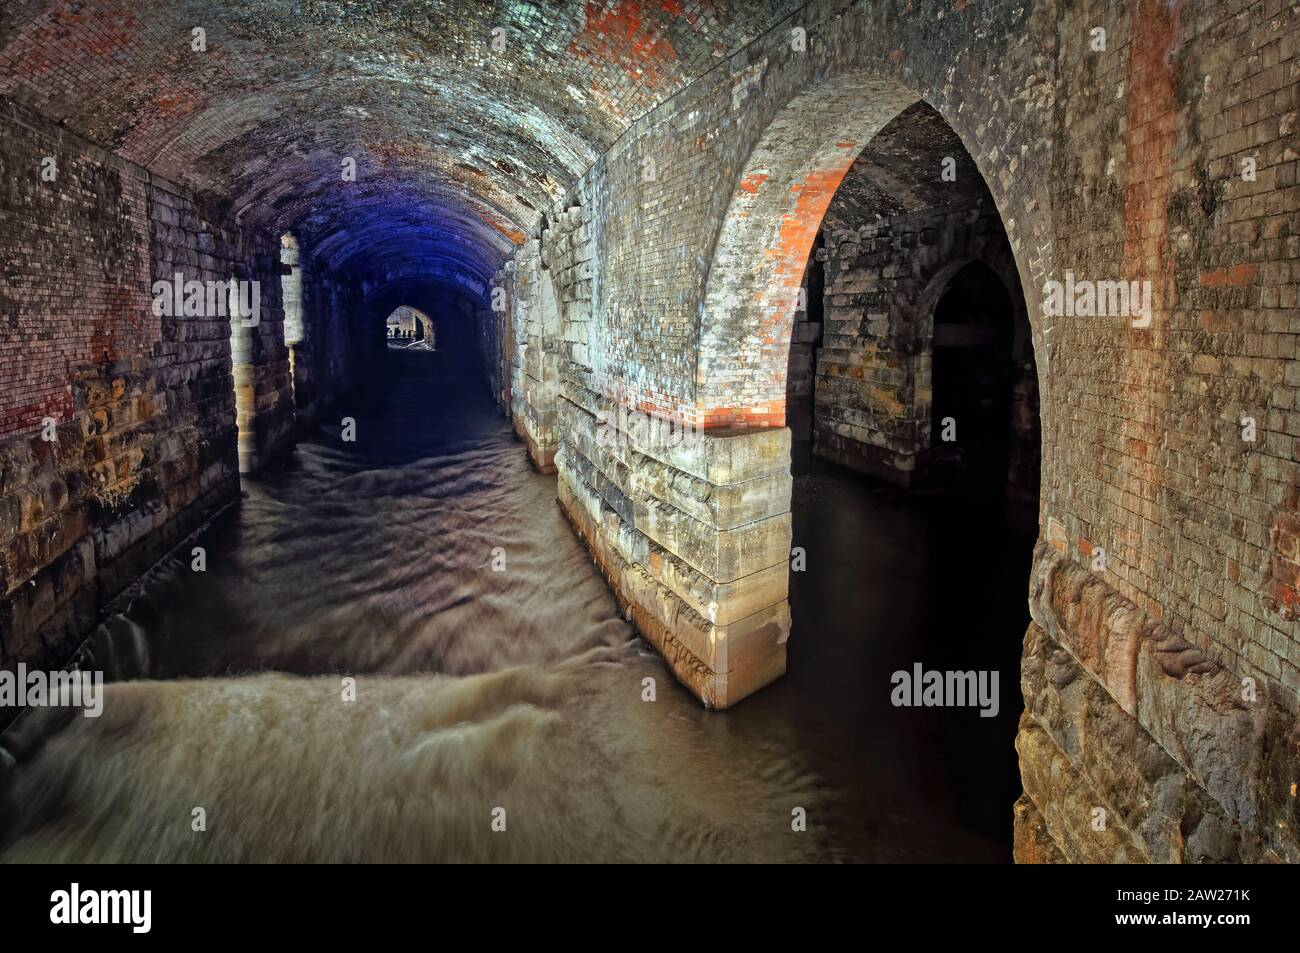 UK,West Yorkshire,Leeds,Granary Wharf,The Dark Arches tunnel complex underneath Leeds Railway Station. Stock Photo